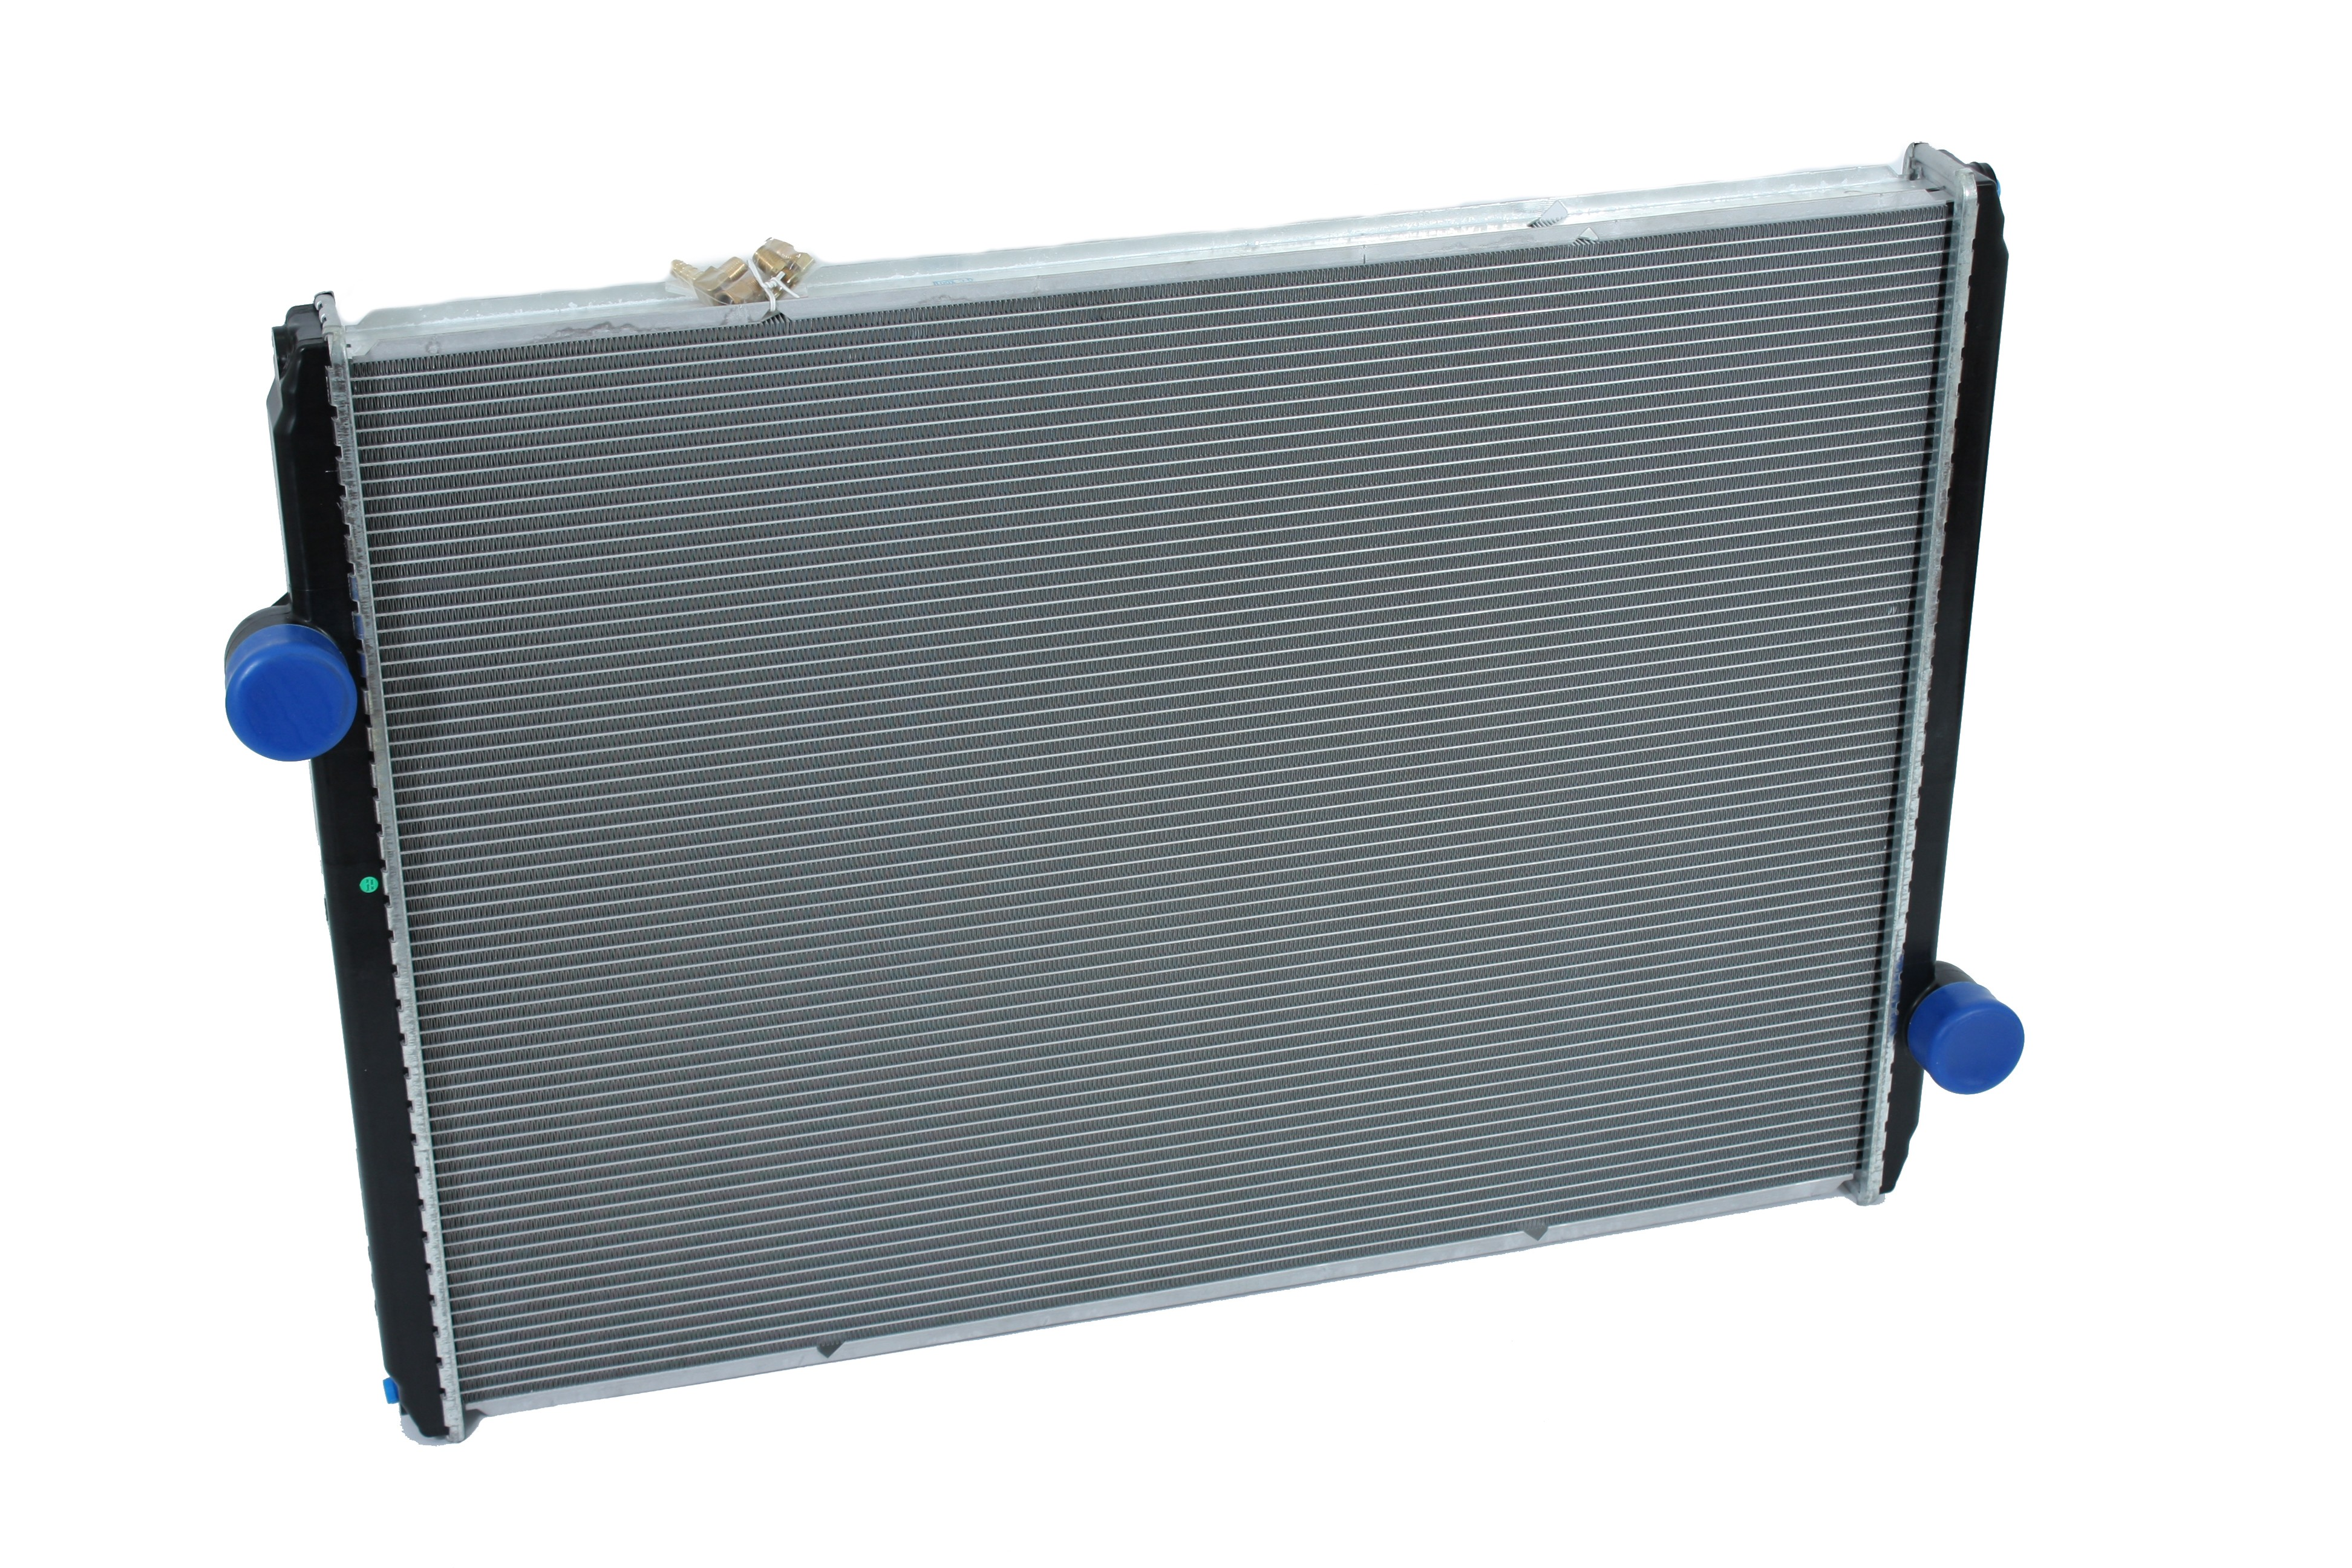 Ford Sterling Radiator 1999-2004 L9500 L9511 Front View.